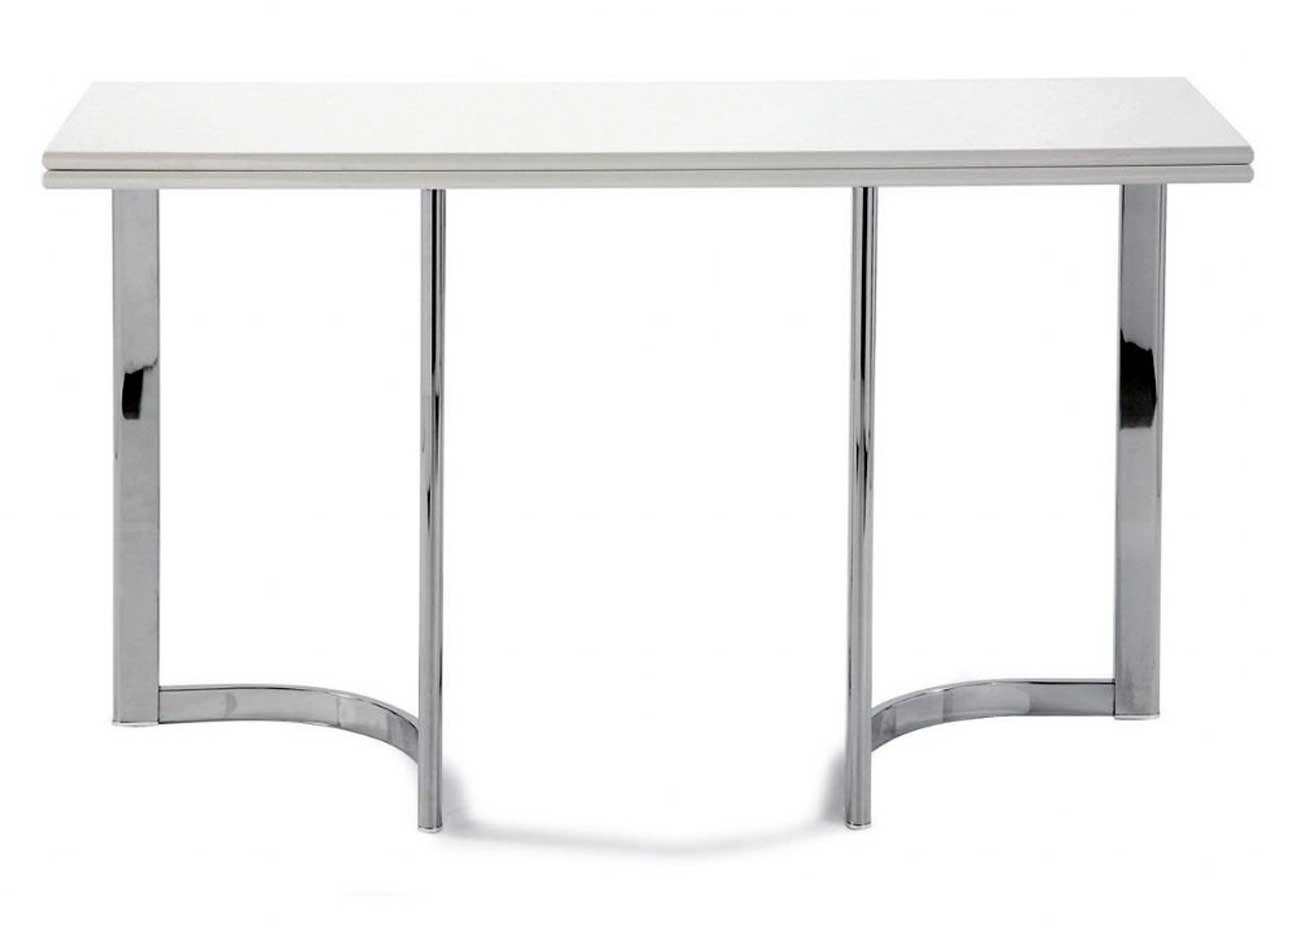 Option Modern Folding Steel Table Design